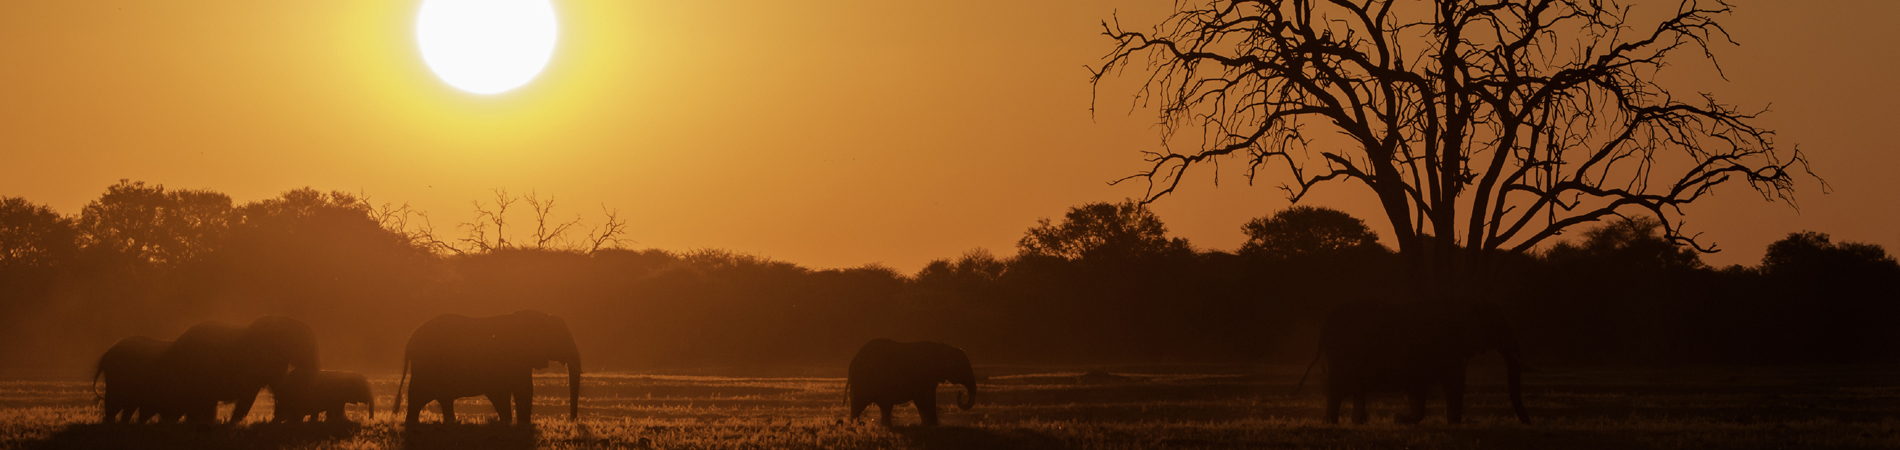 shutterstock zim elephants sunset header